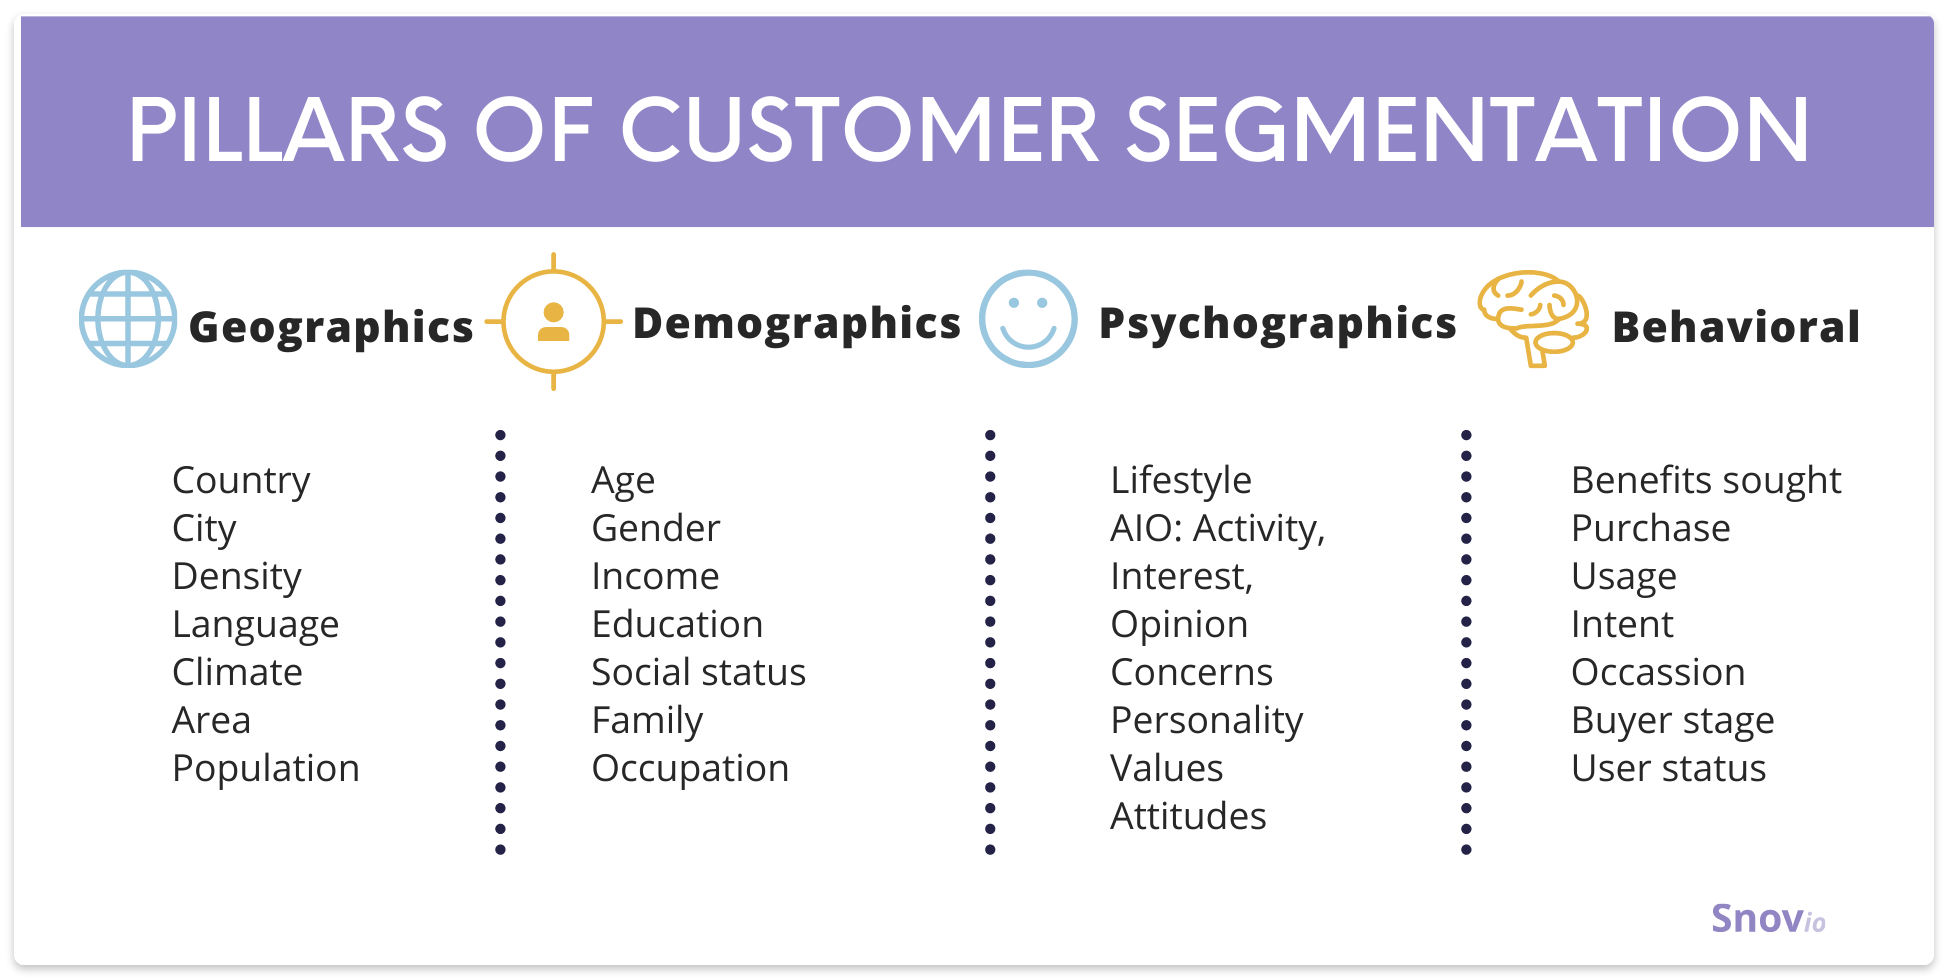 Pillars of customer segmentation